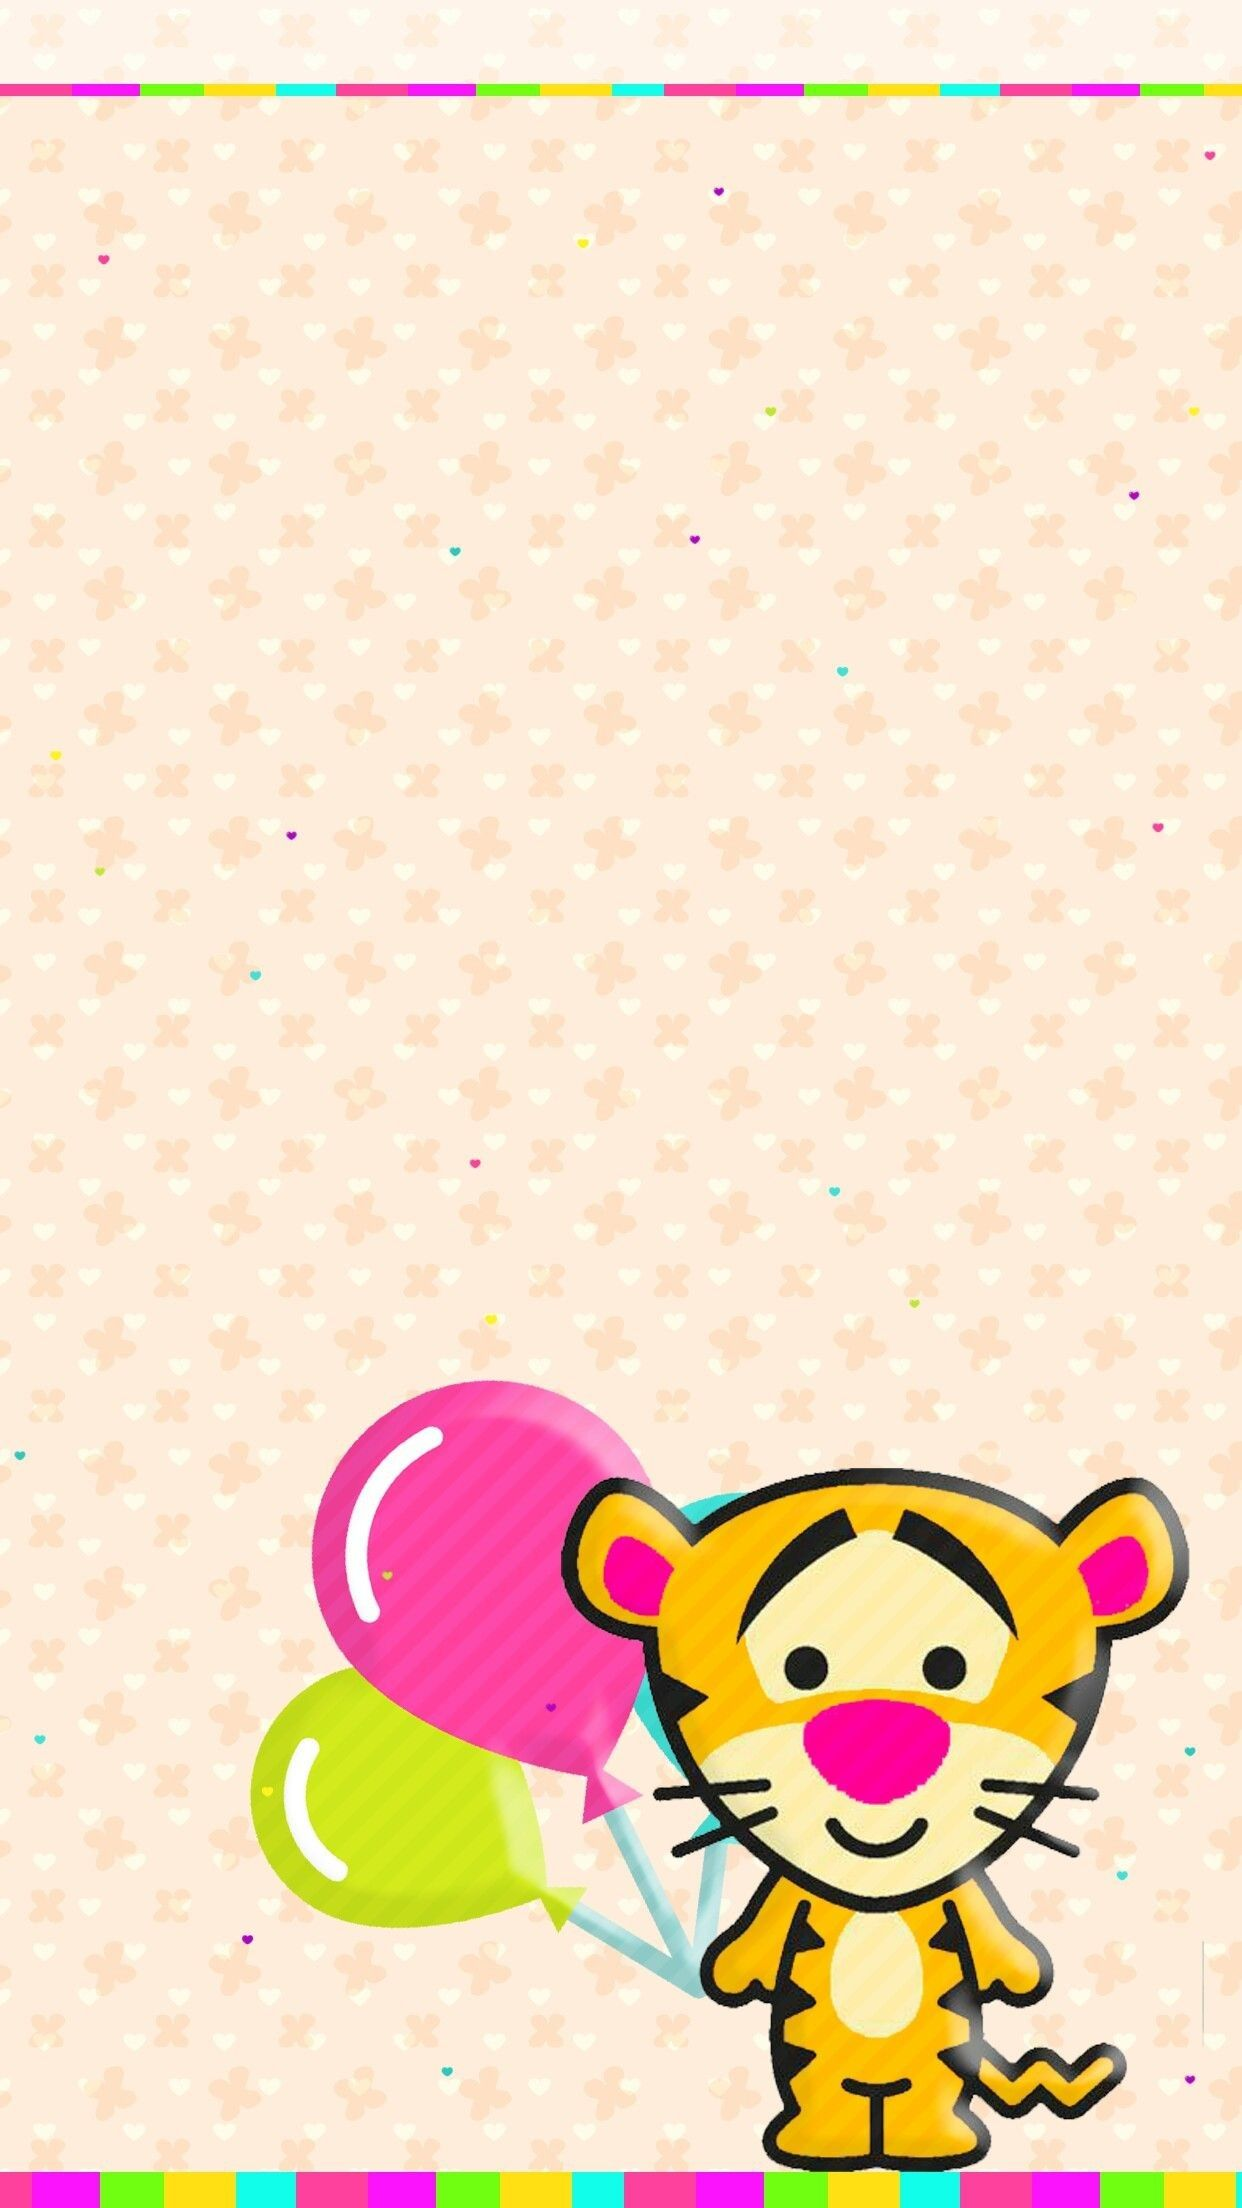 Pin by Chels on ɖɪsƞɛʏ աɑʟʟpɑpɛяs Hello kitty wallpaper